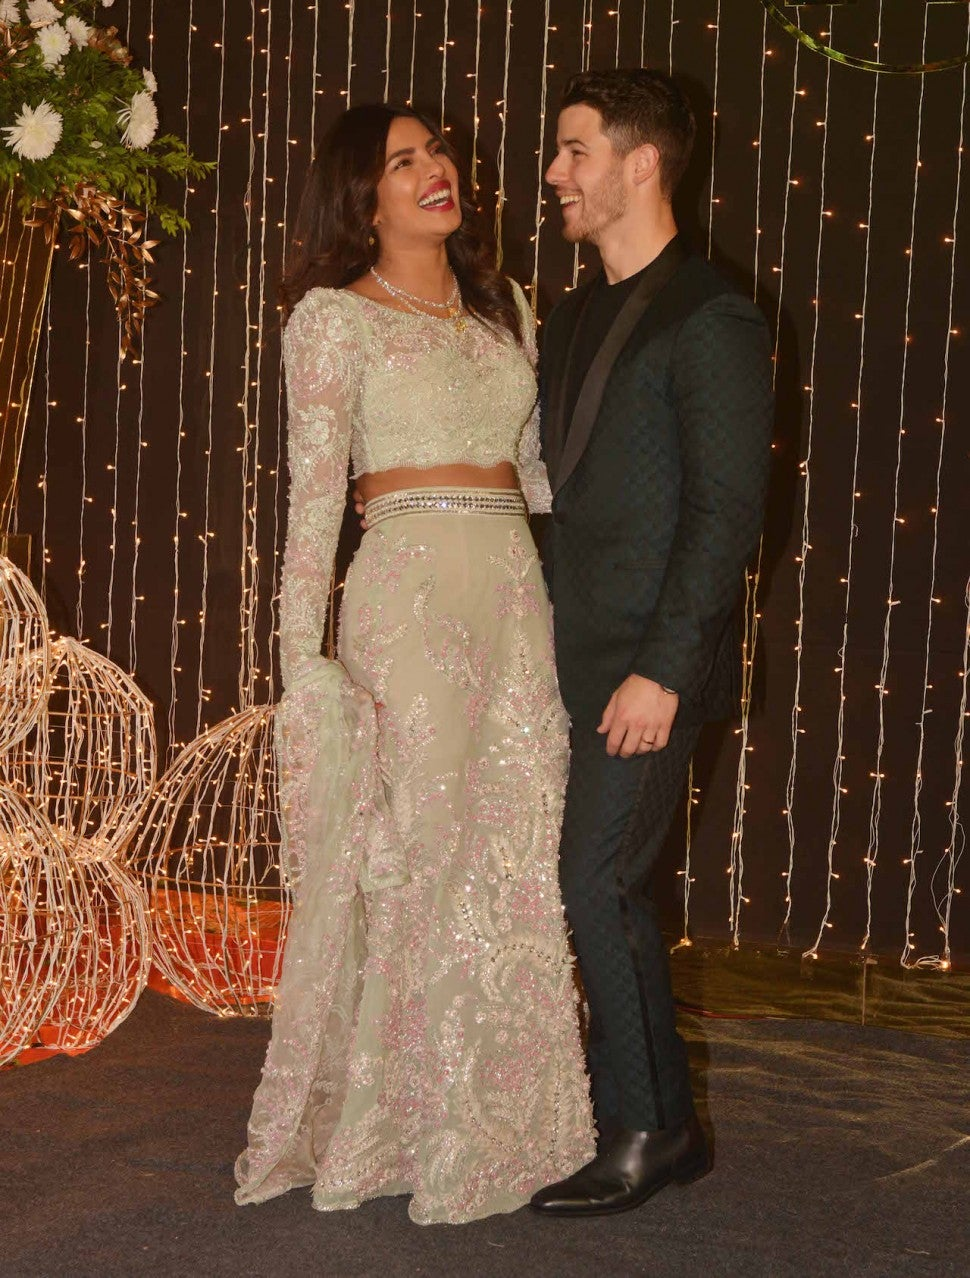 Nick Jonas and Priyanka Chopra at third wedding reception in Mumbai